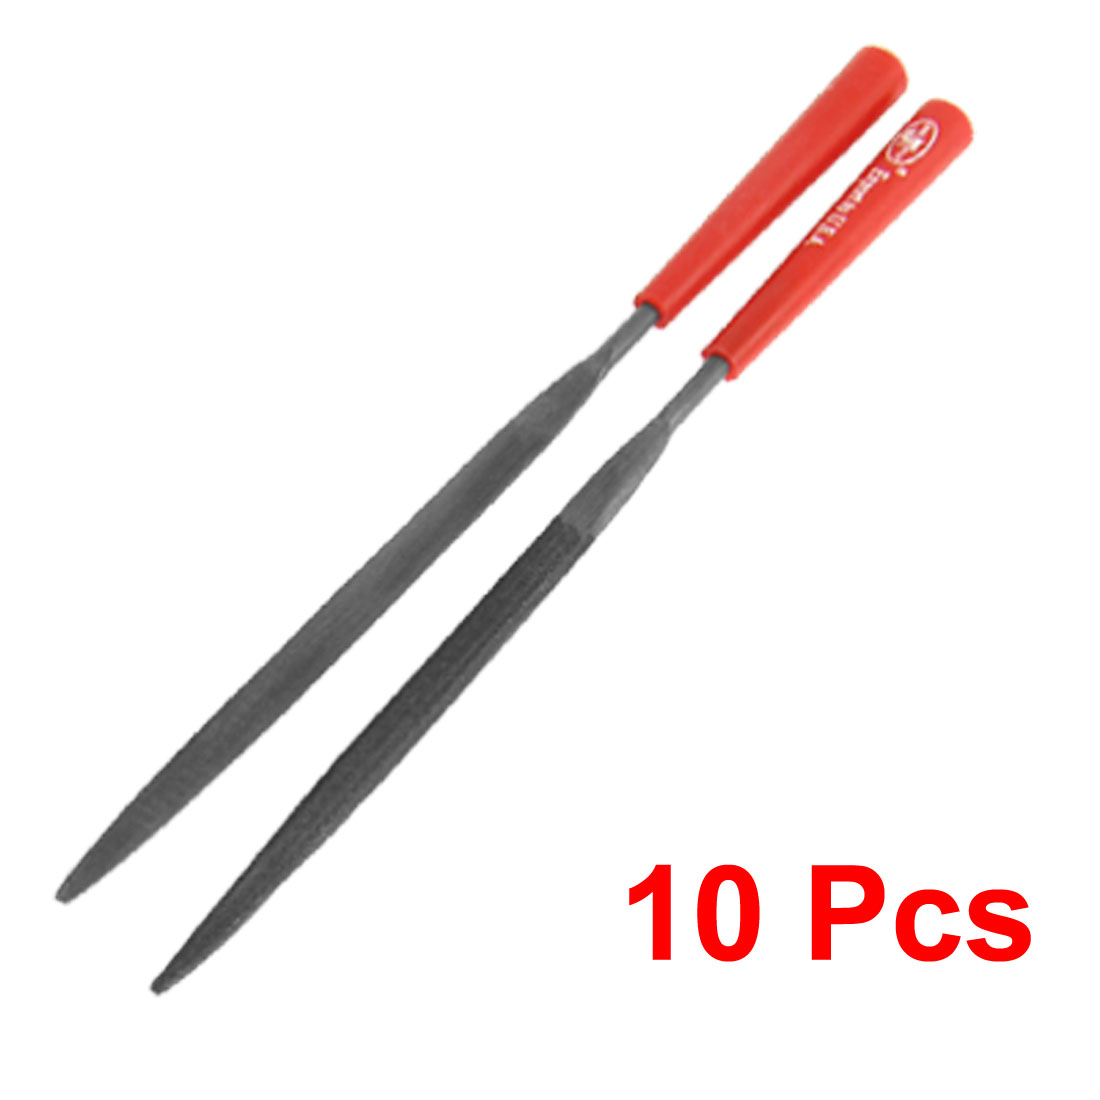 Red Handle 3 x 140mm Half Round Ring Needle Files 10 Pcs